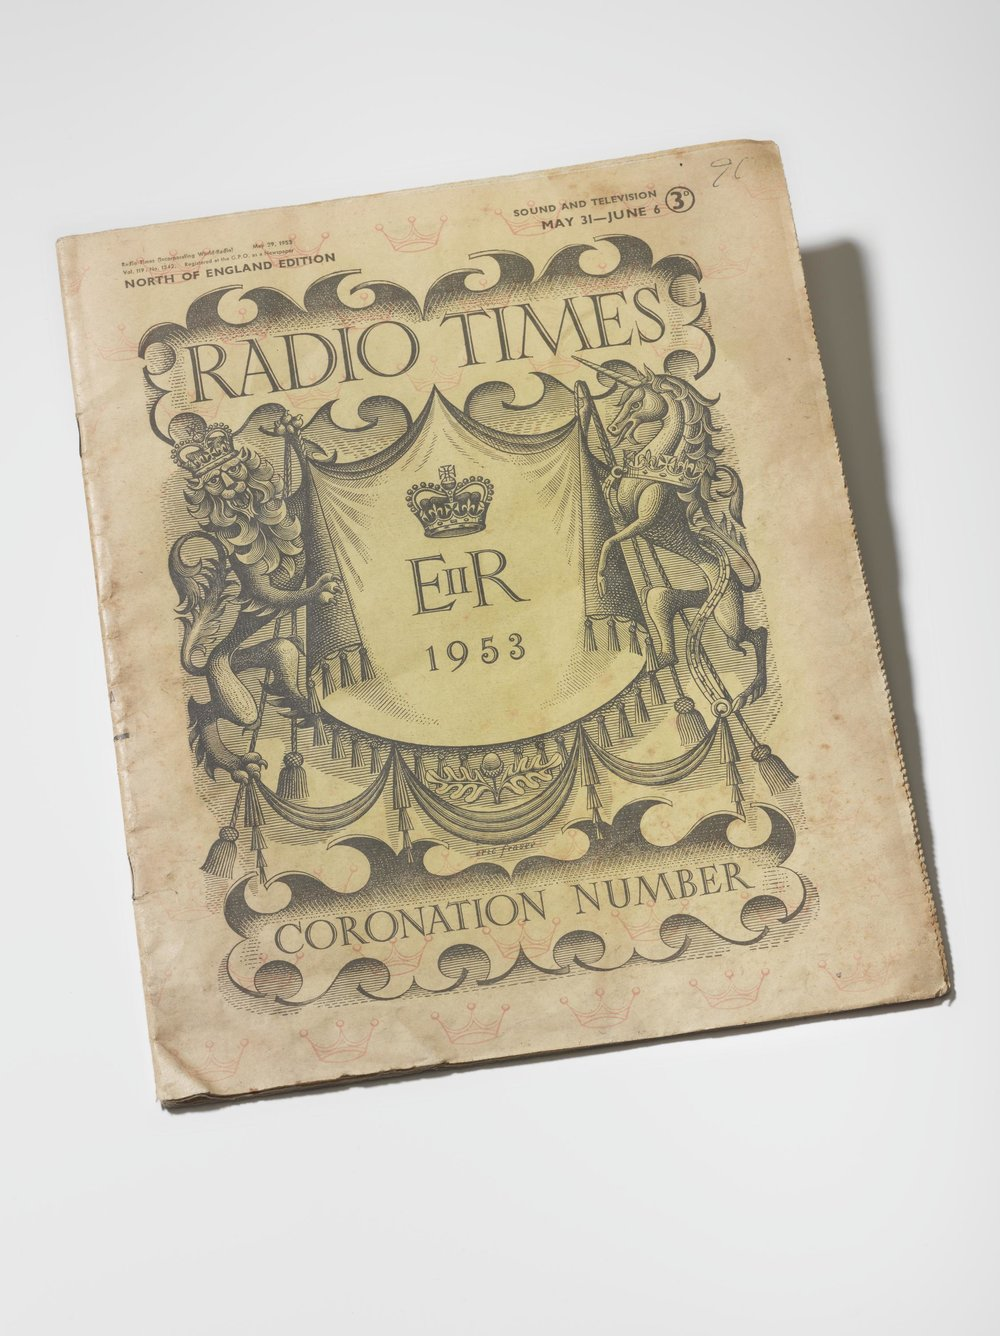 June 1953 Coronation Edition of the Radio Times, published by BBC Magazines (1953). No. 1542 Special Coronation number, North of England Edition. More information